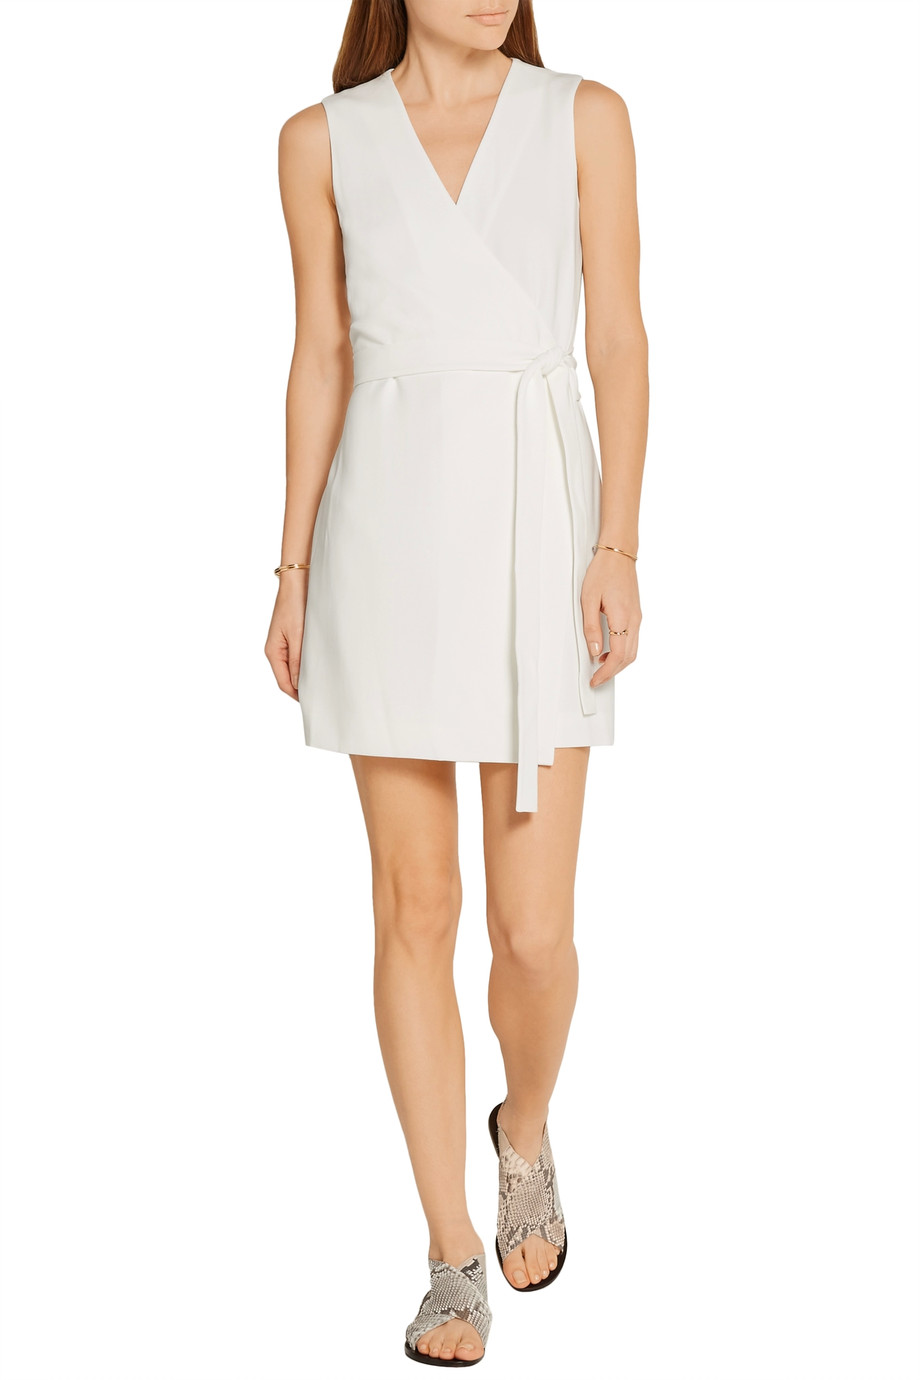 THEORY Benina crepe wrap playsuit. The Outnet. Was: $355. Now: $177.